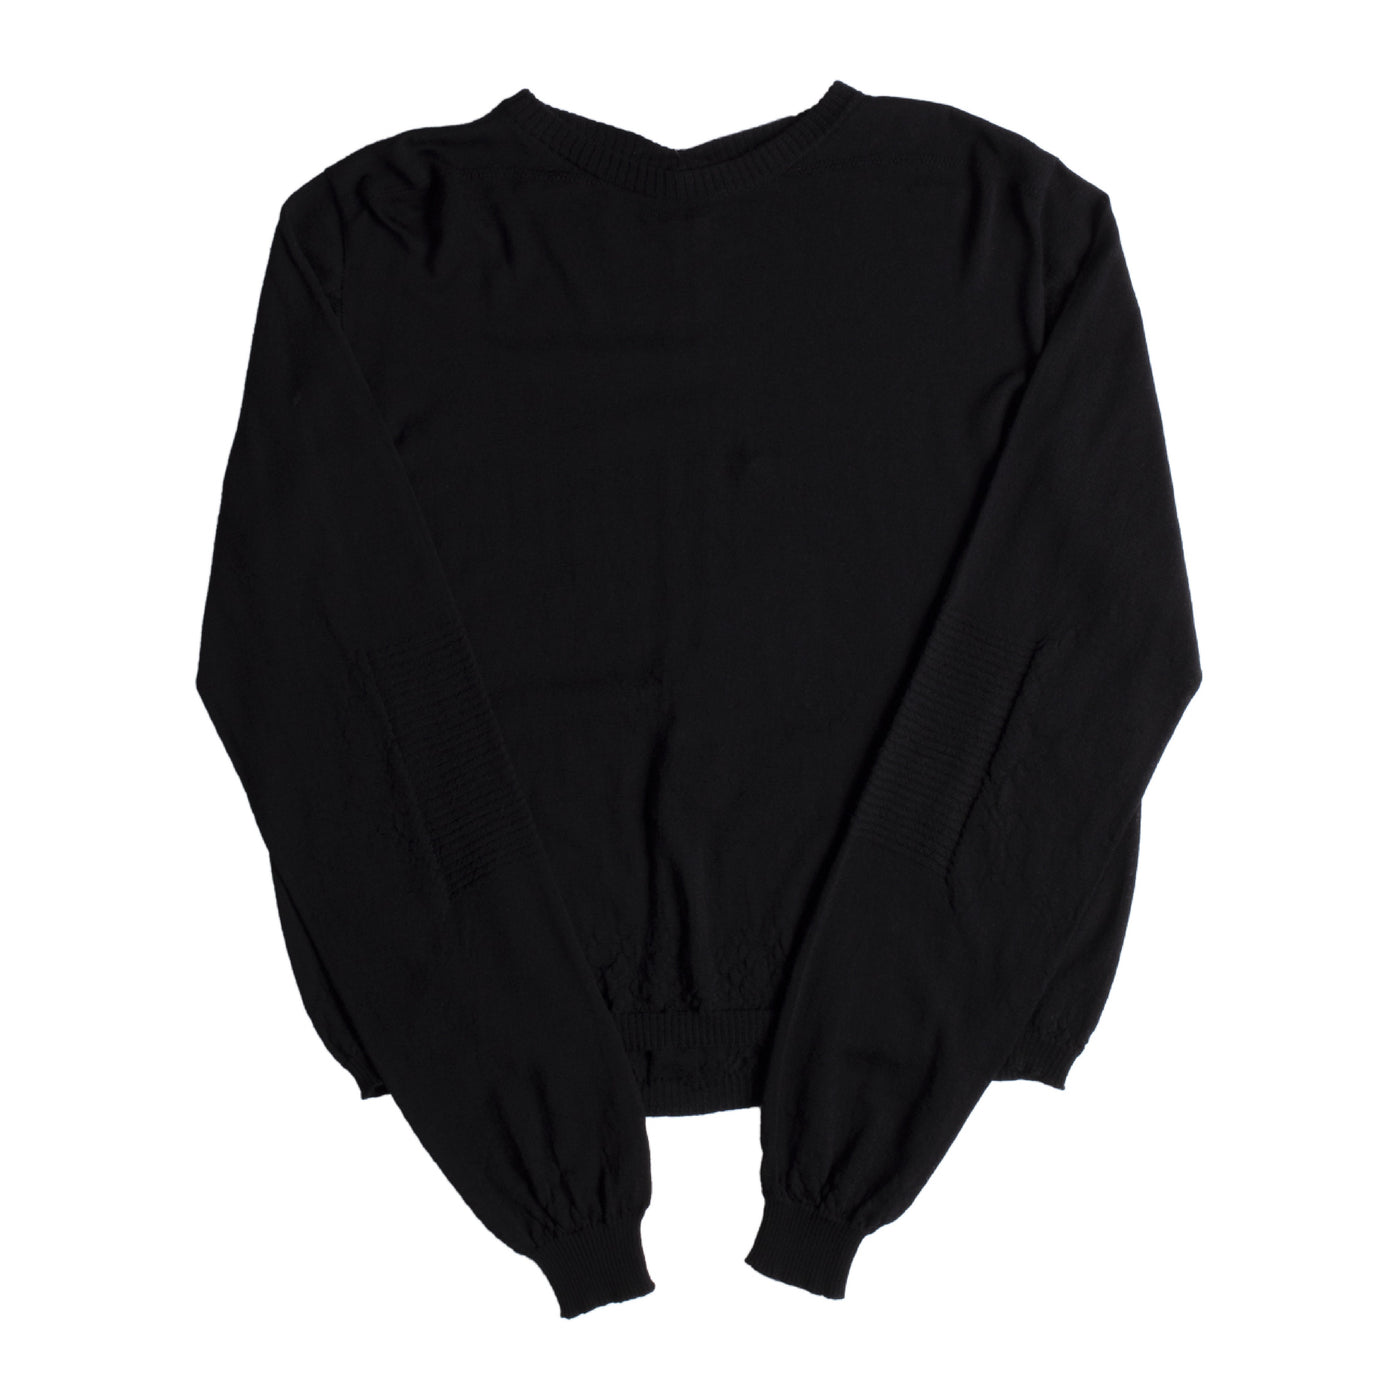 Load image into Gallery viewer, RICK OWENS CROPPED OVERSIZED SWEATER BLACK